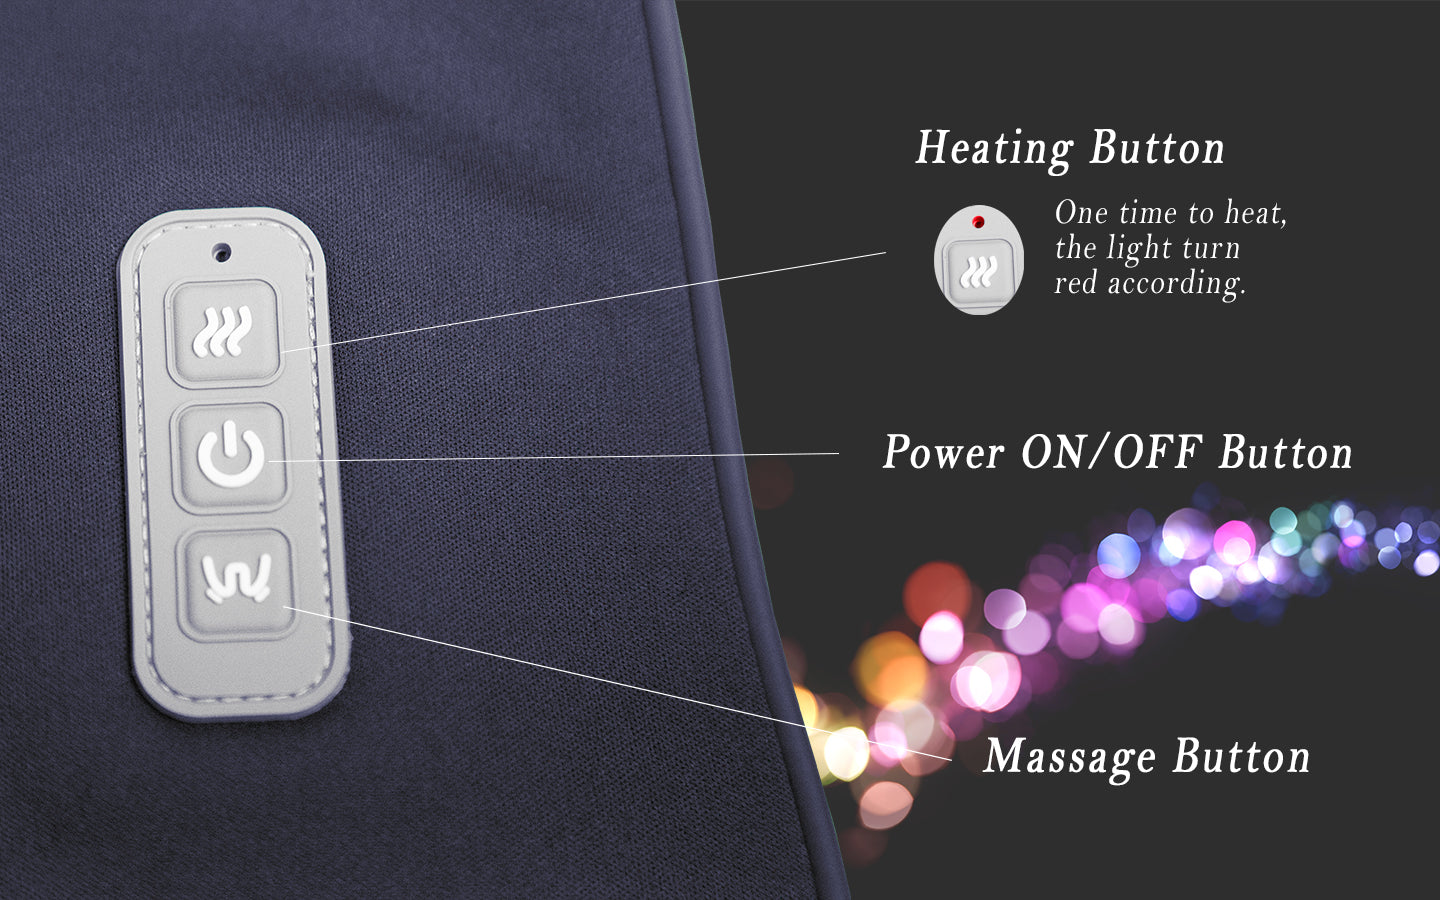 Heating button, power on/off button, massage button